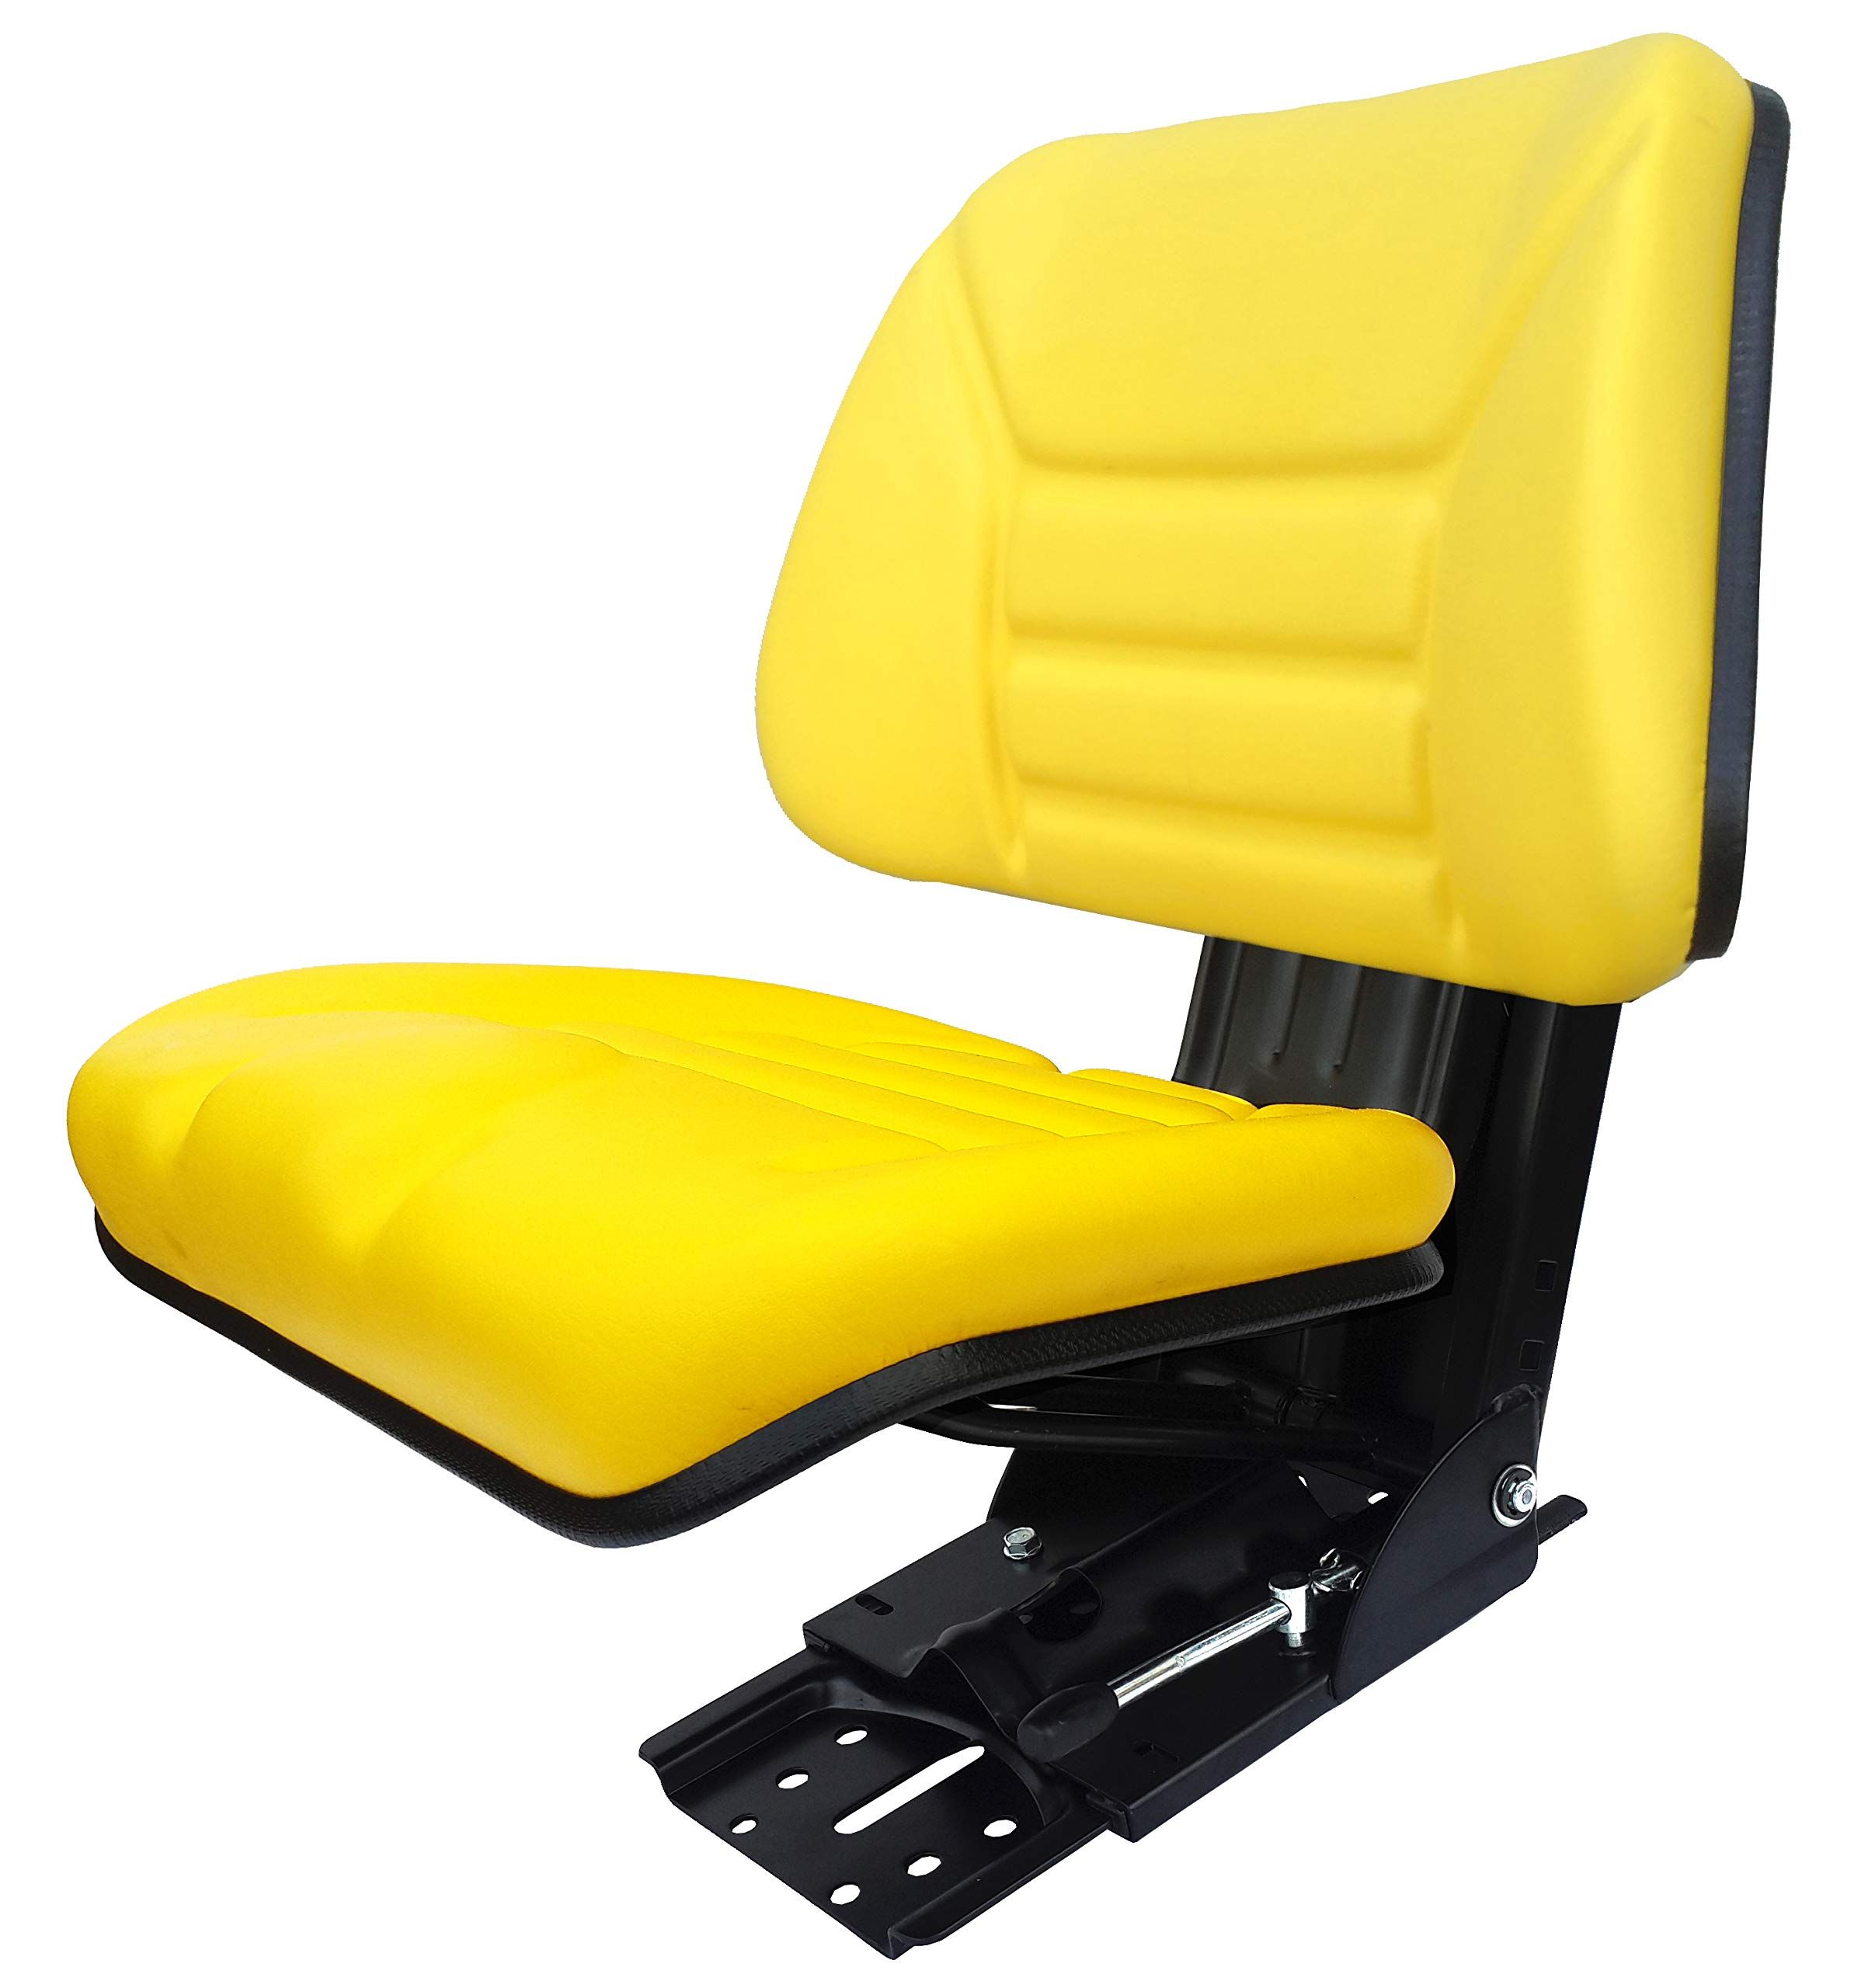 Star ECO 109 Yellow Universal Trapezoid Suspension Tractor Seat (Replacement for John Deere Vehicles)